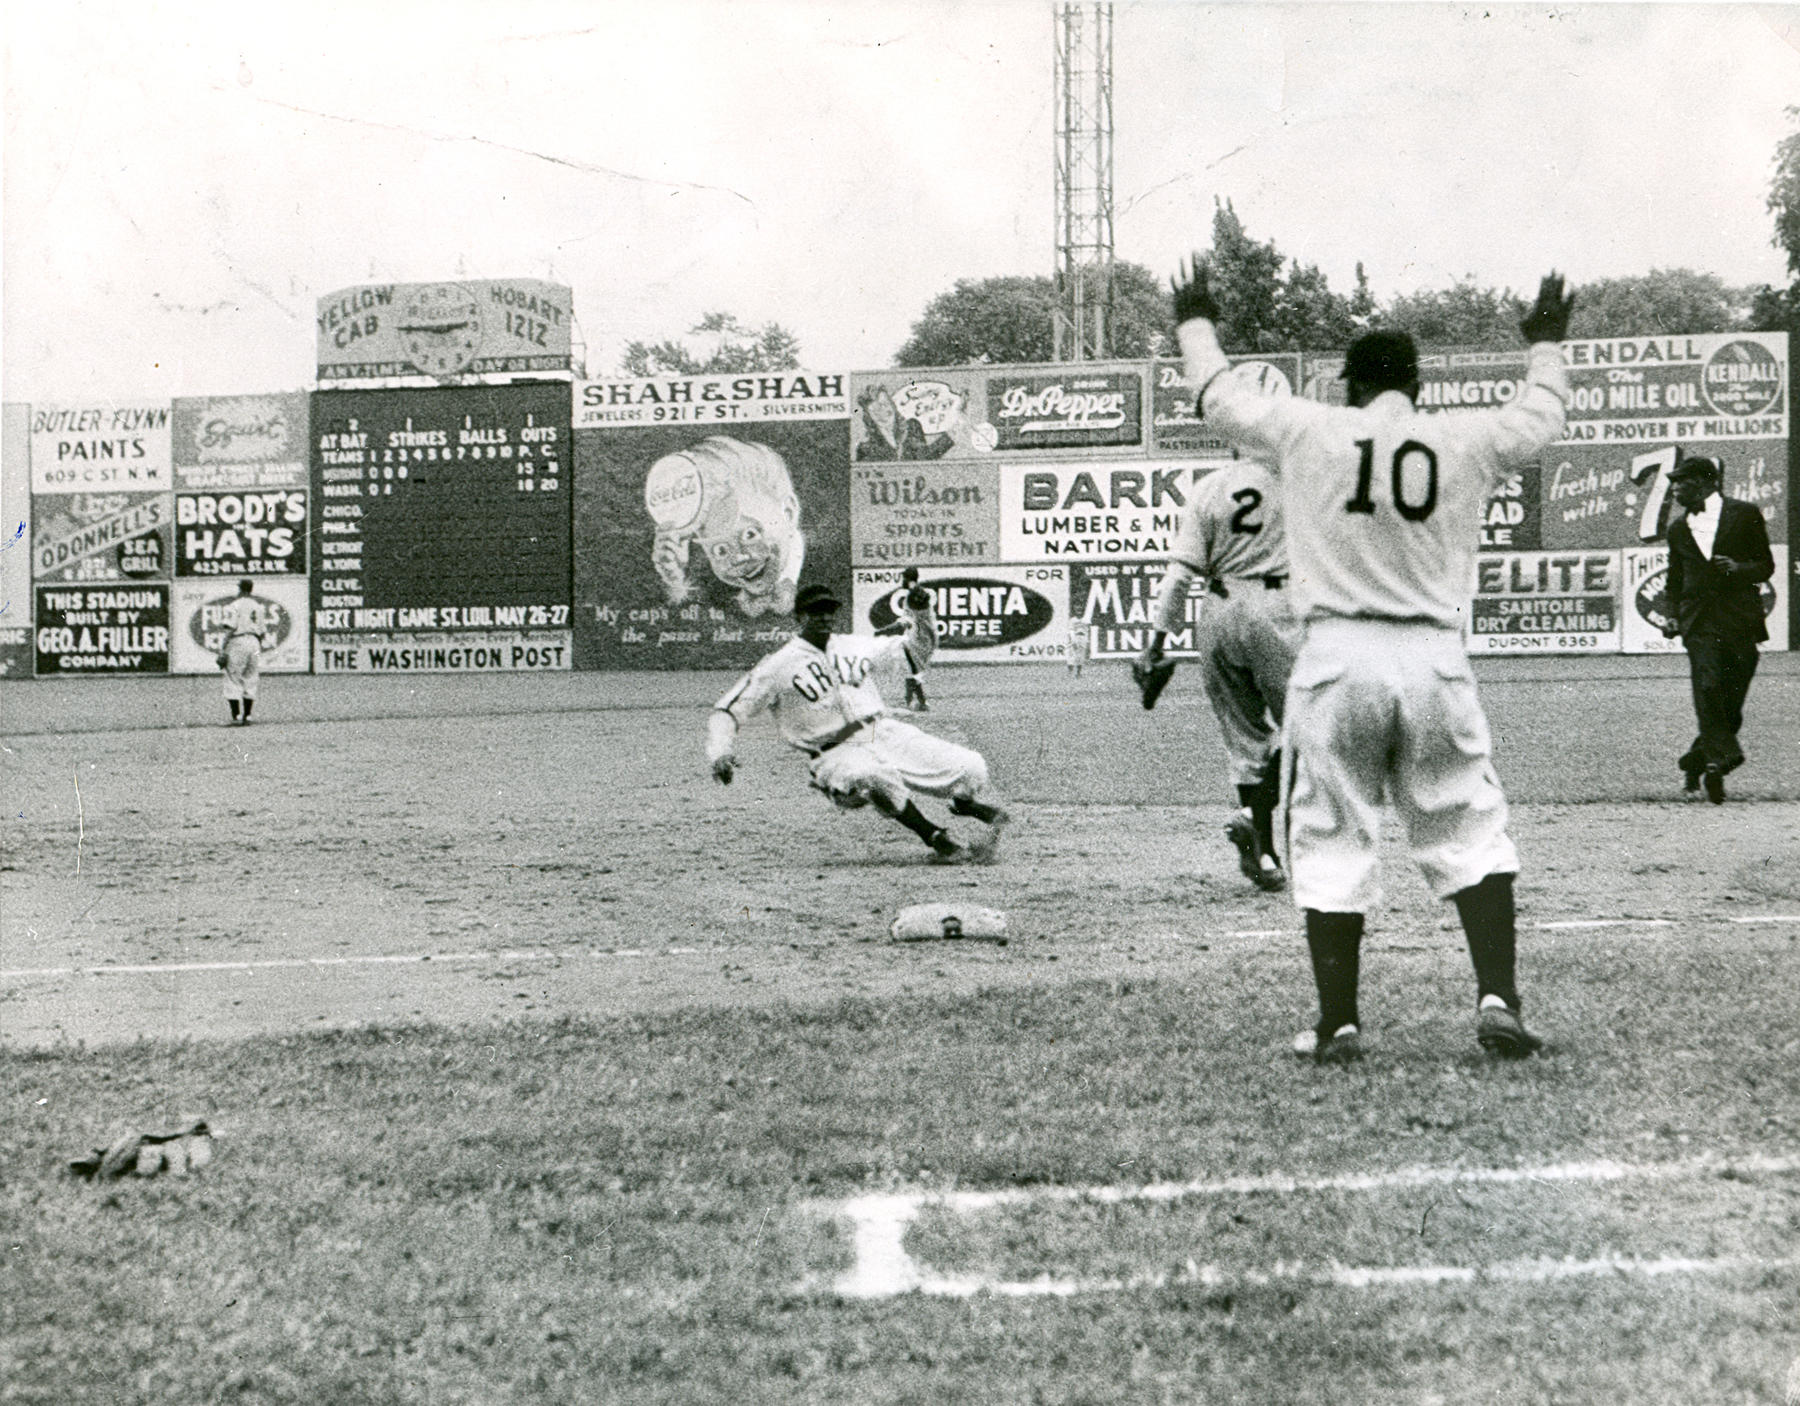 Cool Papa Bell of the Homestead Grays sliding into third base during the first game of a double-header against the Baltimore Elite Giants at Washington's Griffith Stadium on Negro National League Opening Day, May 16, 1943.